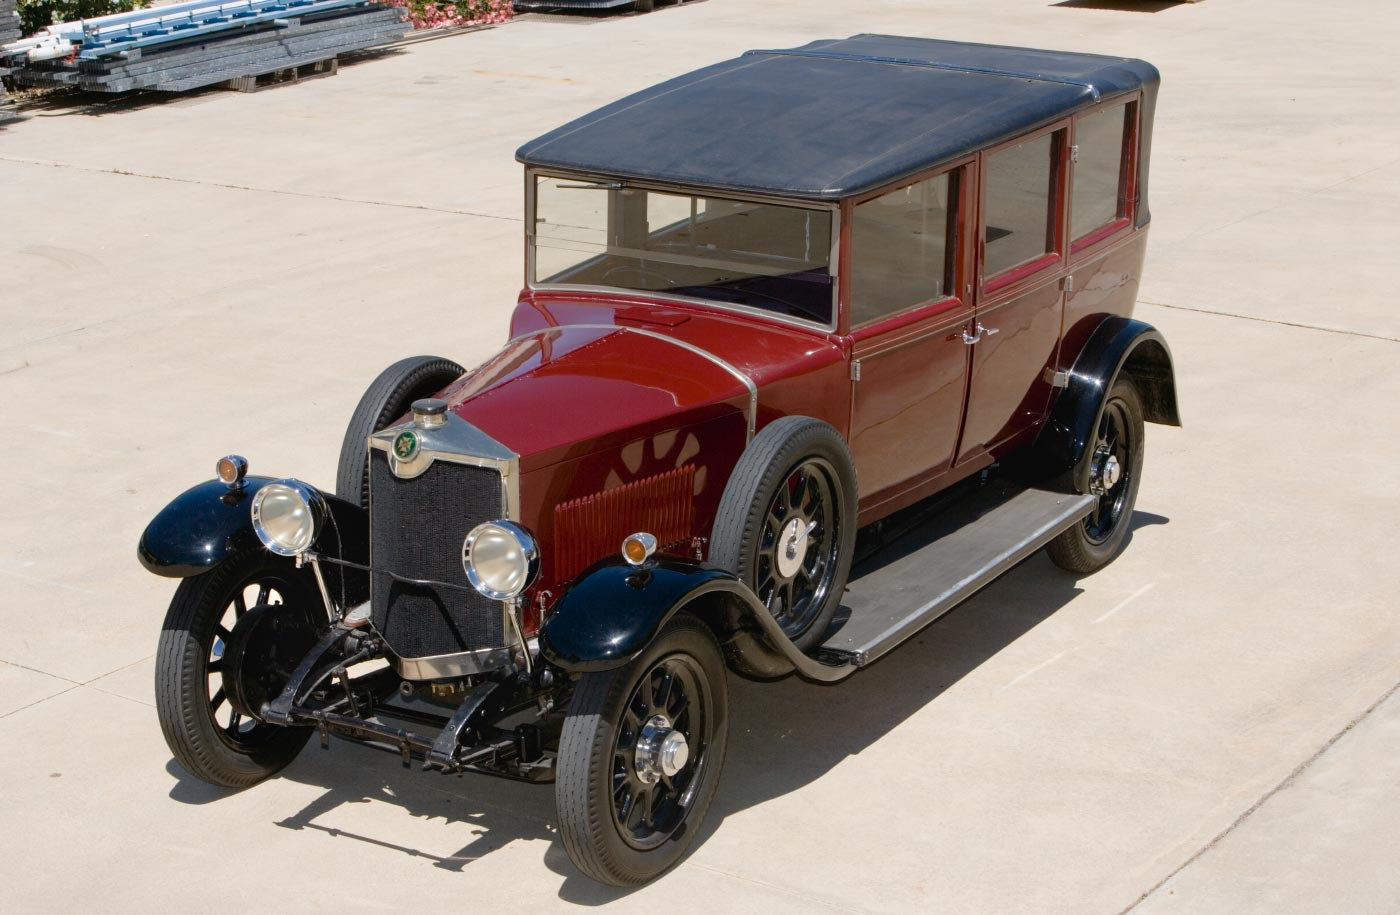 Elevated view of a polished maroon vehicle, with black trim and black leather roof. The car has running boards and mudguards.